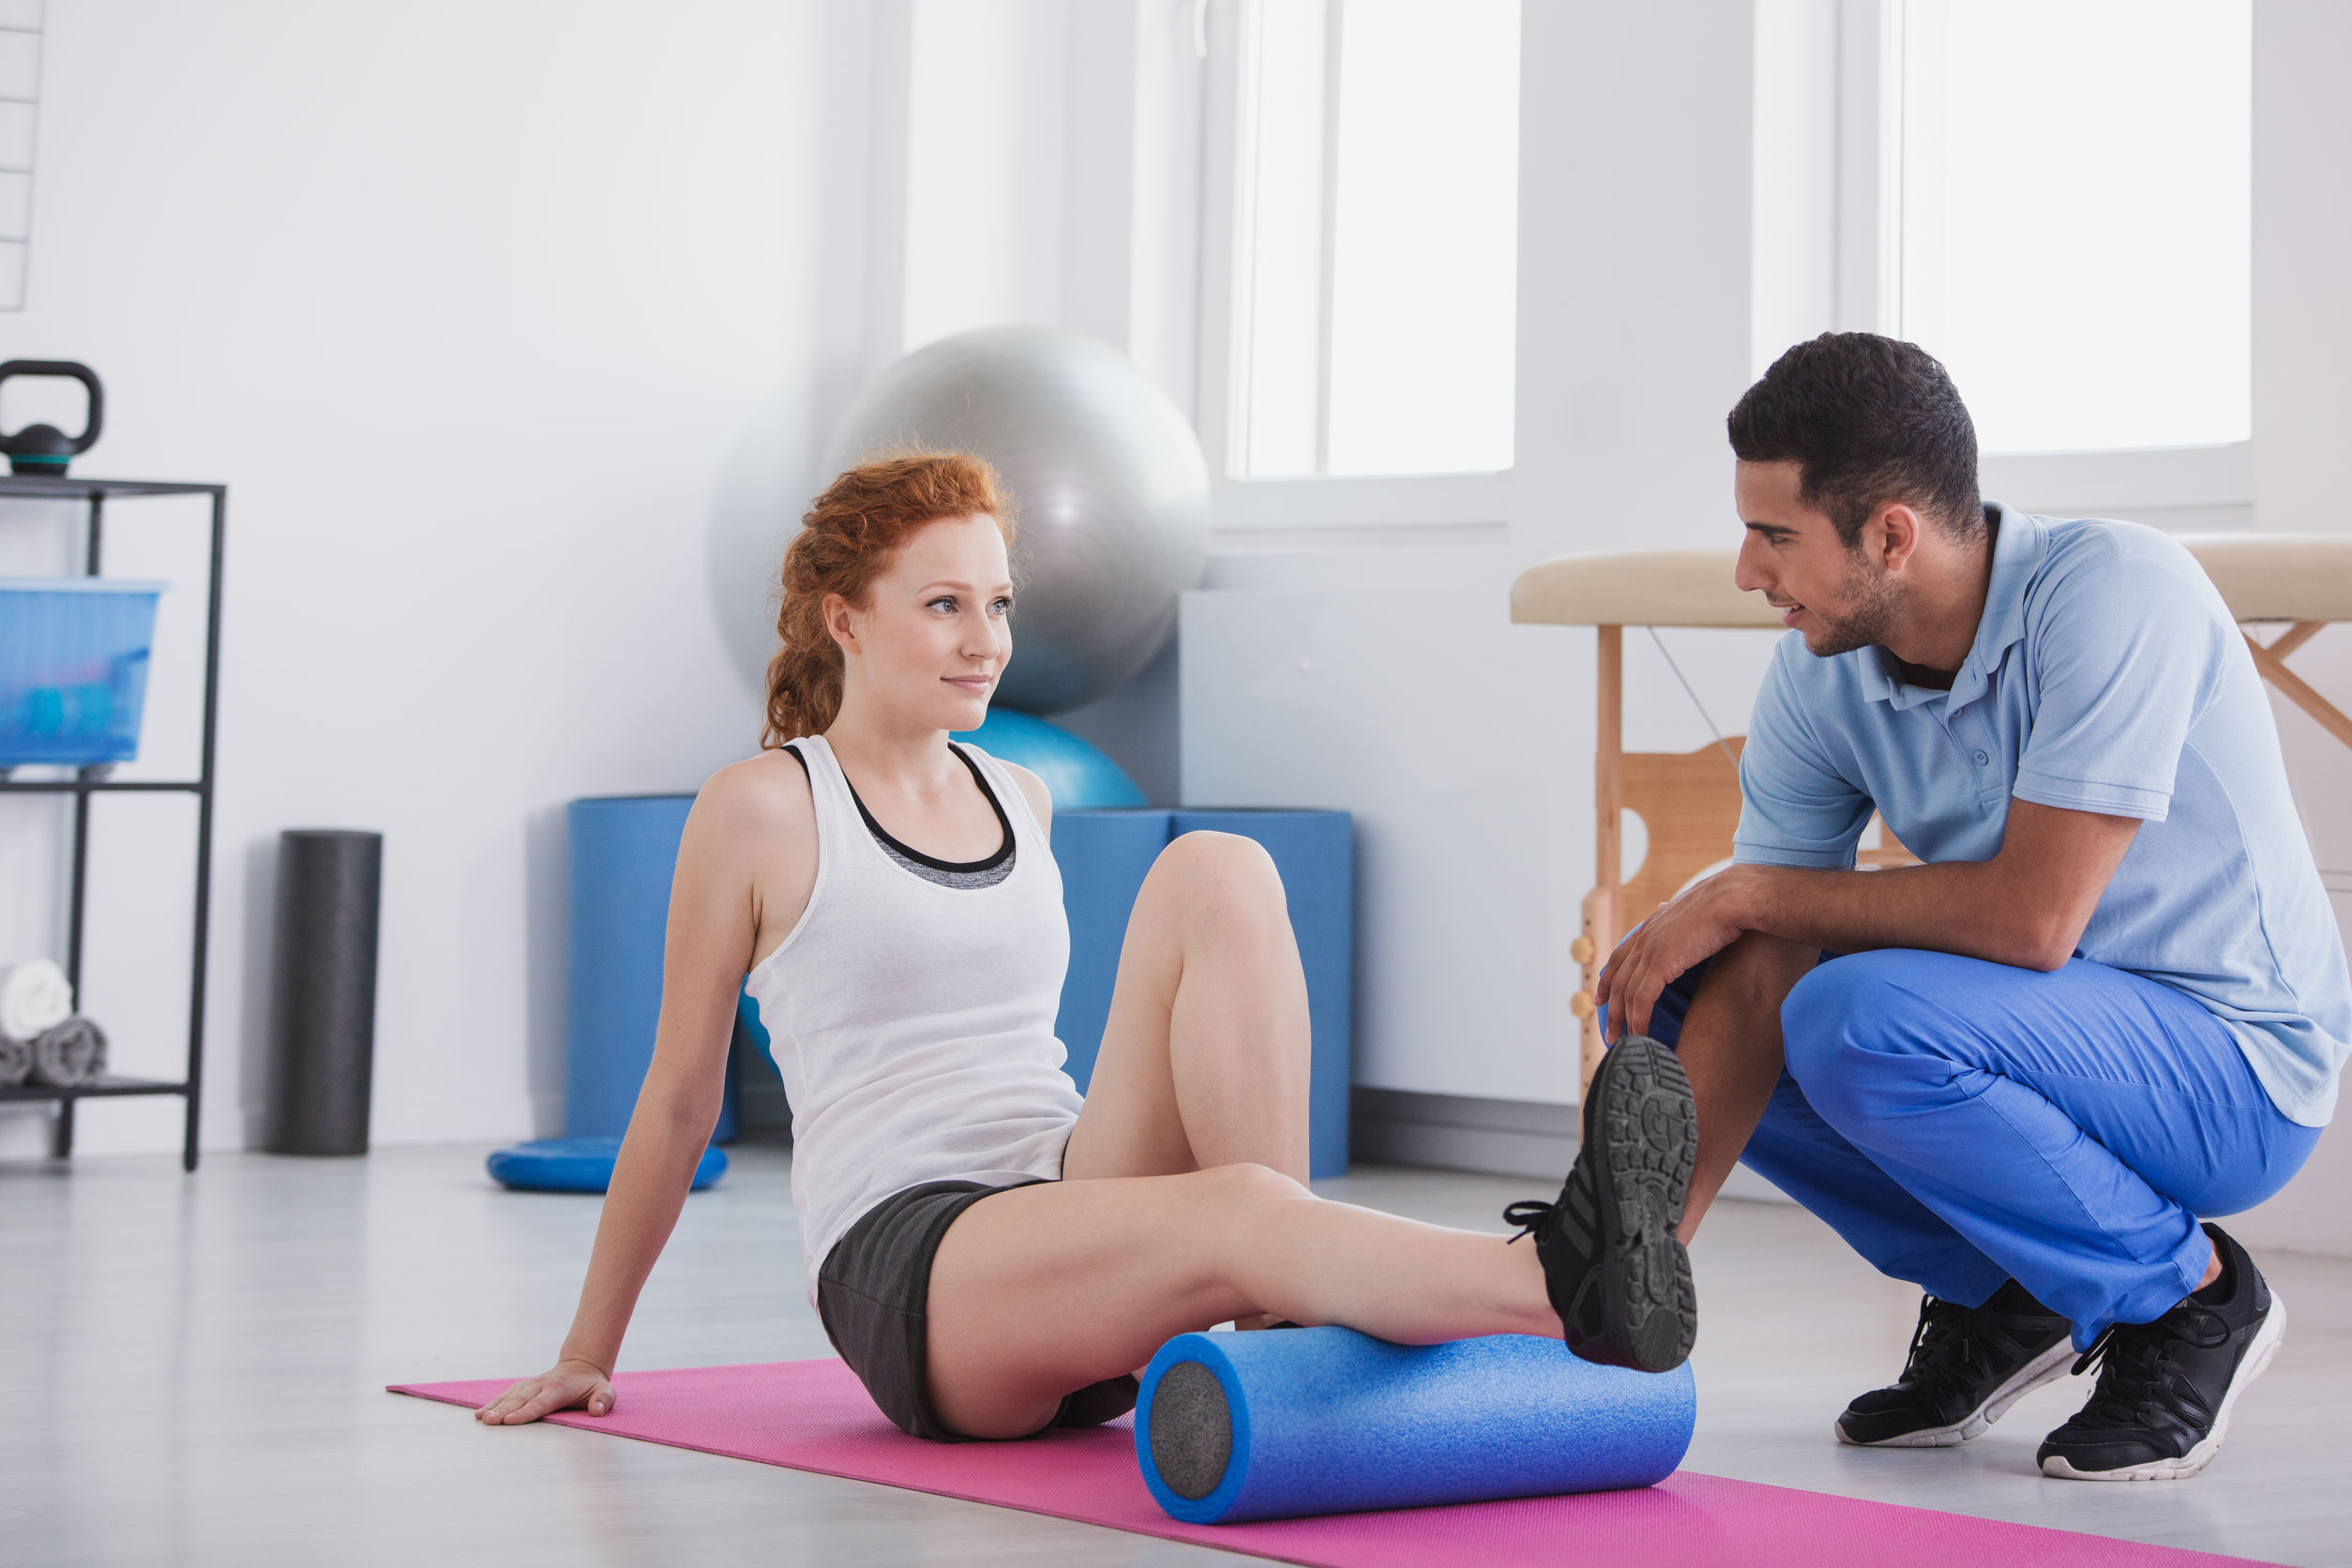 Young woman working out with a foam roller on a mat supported by her trainer